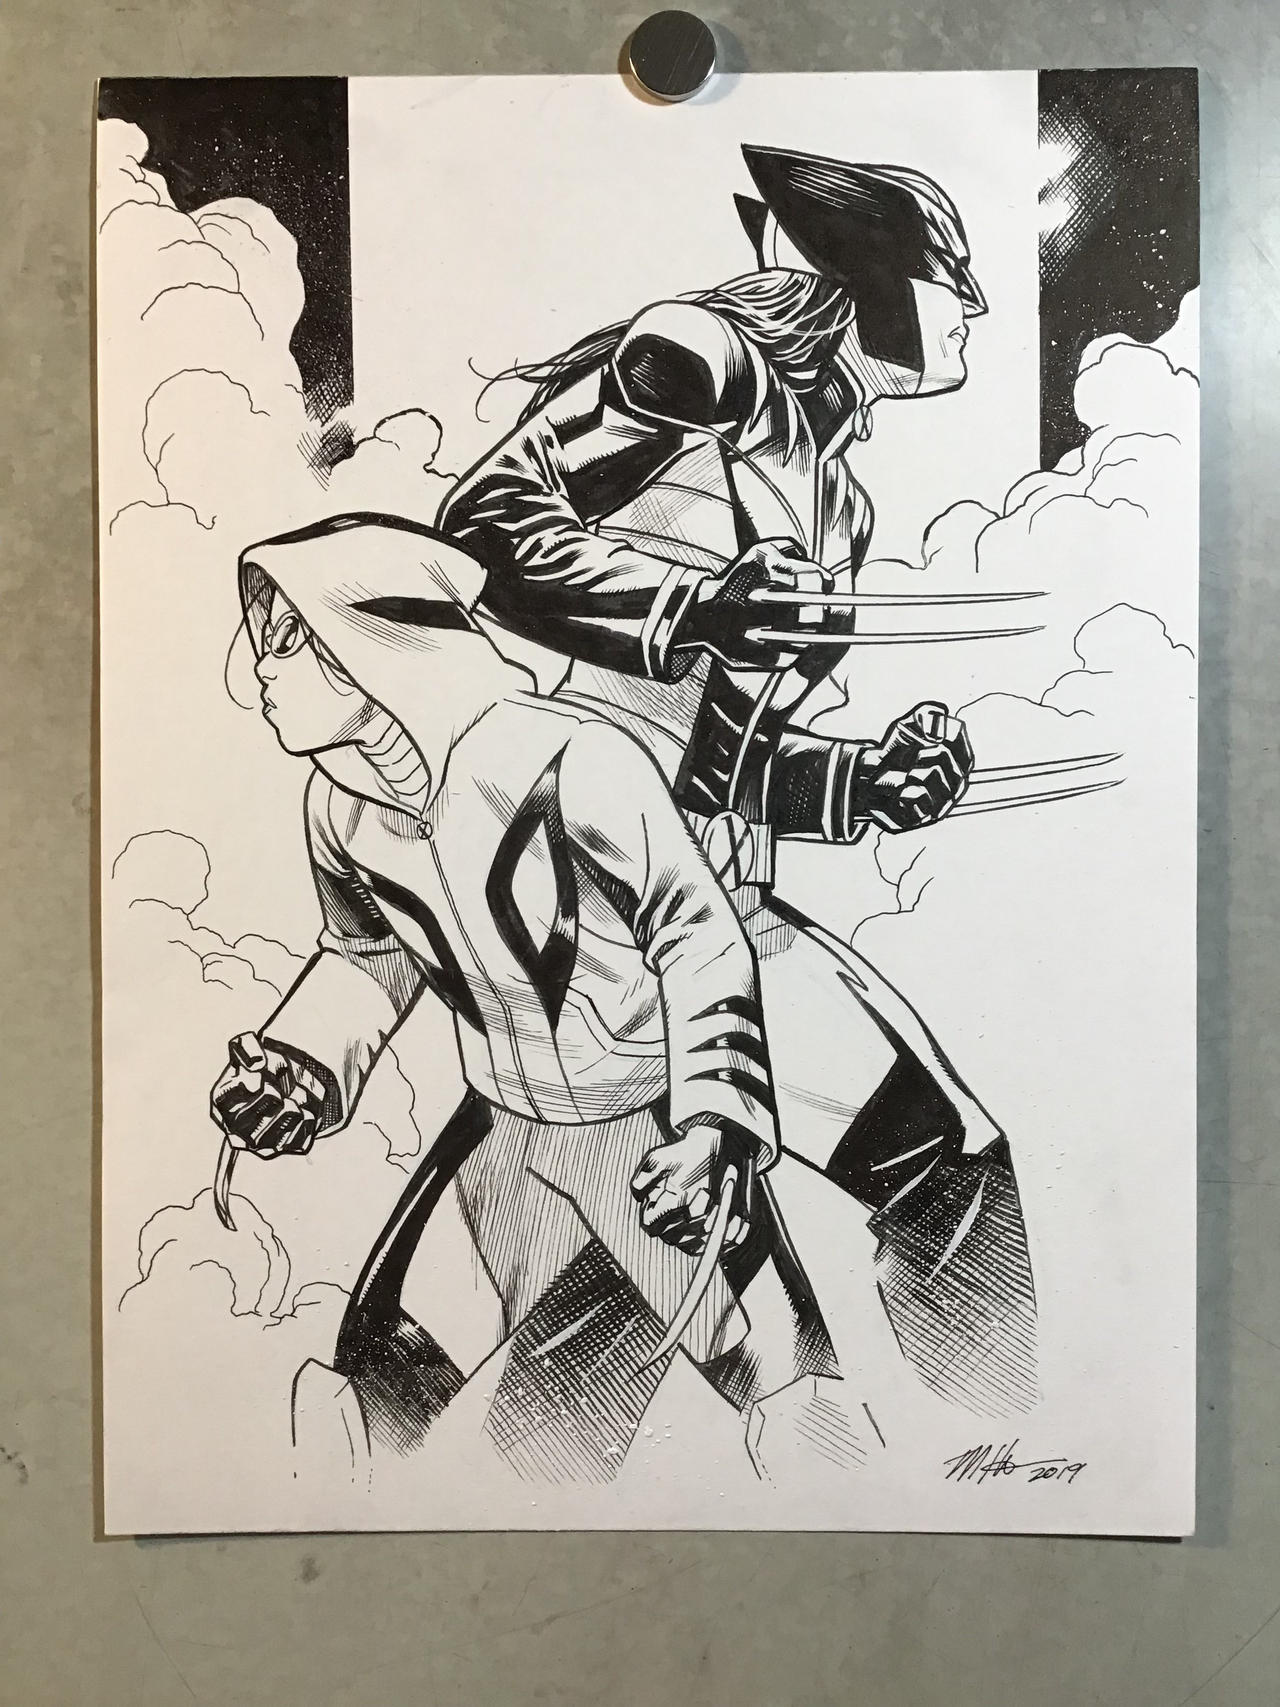 Wolverine and Honeybadger!